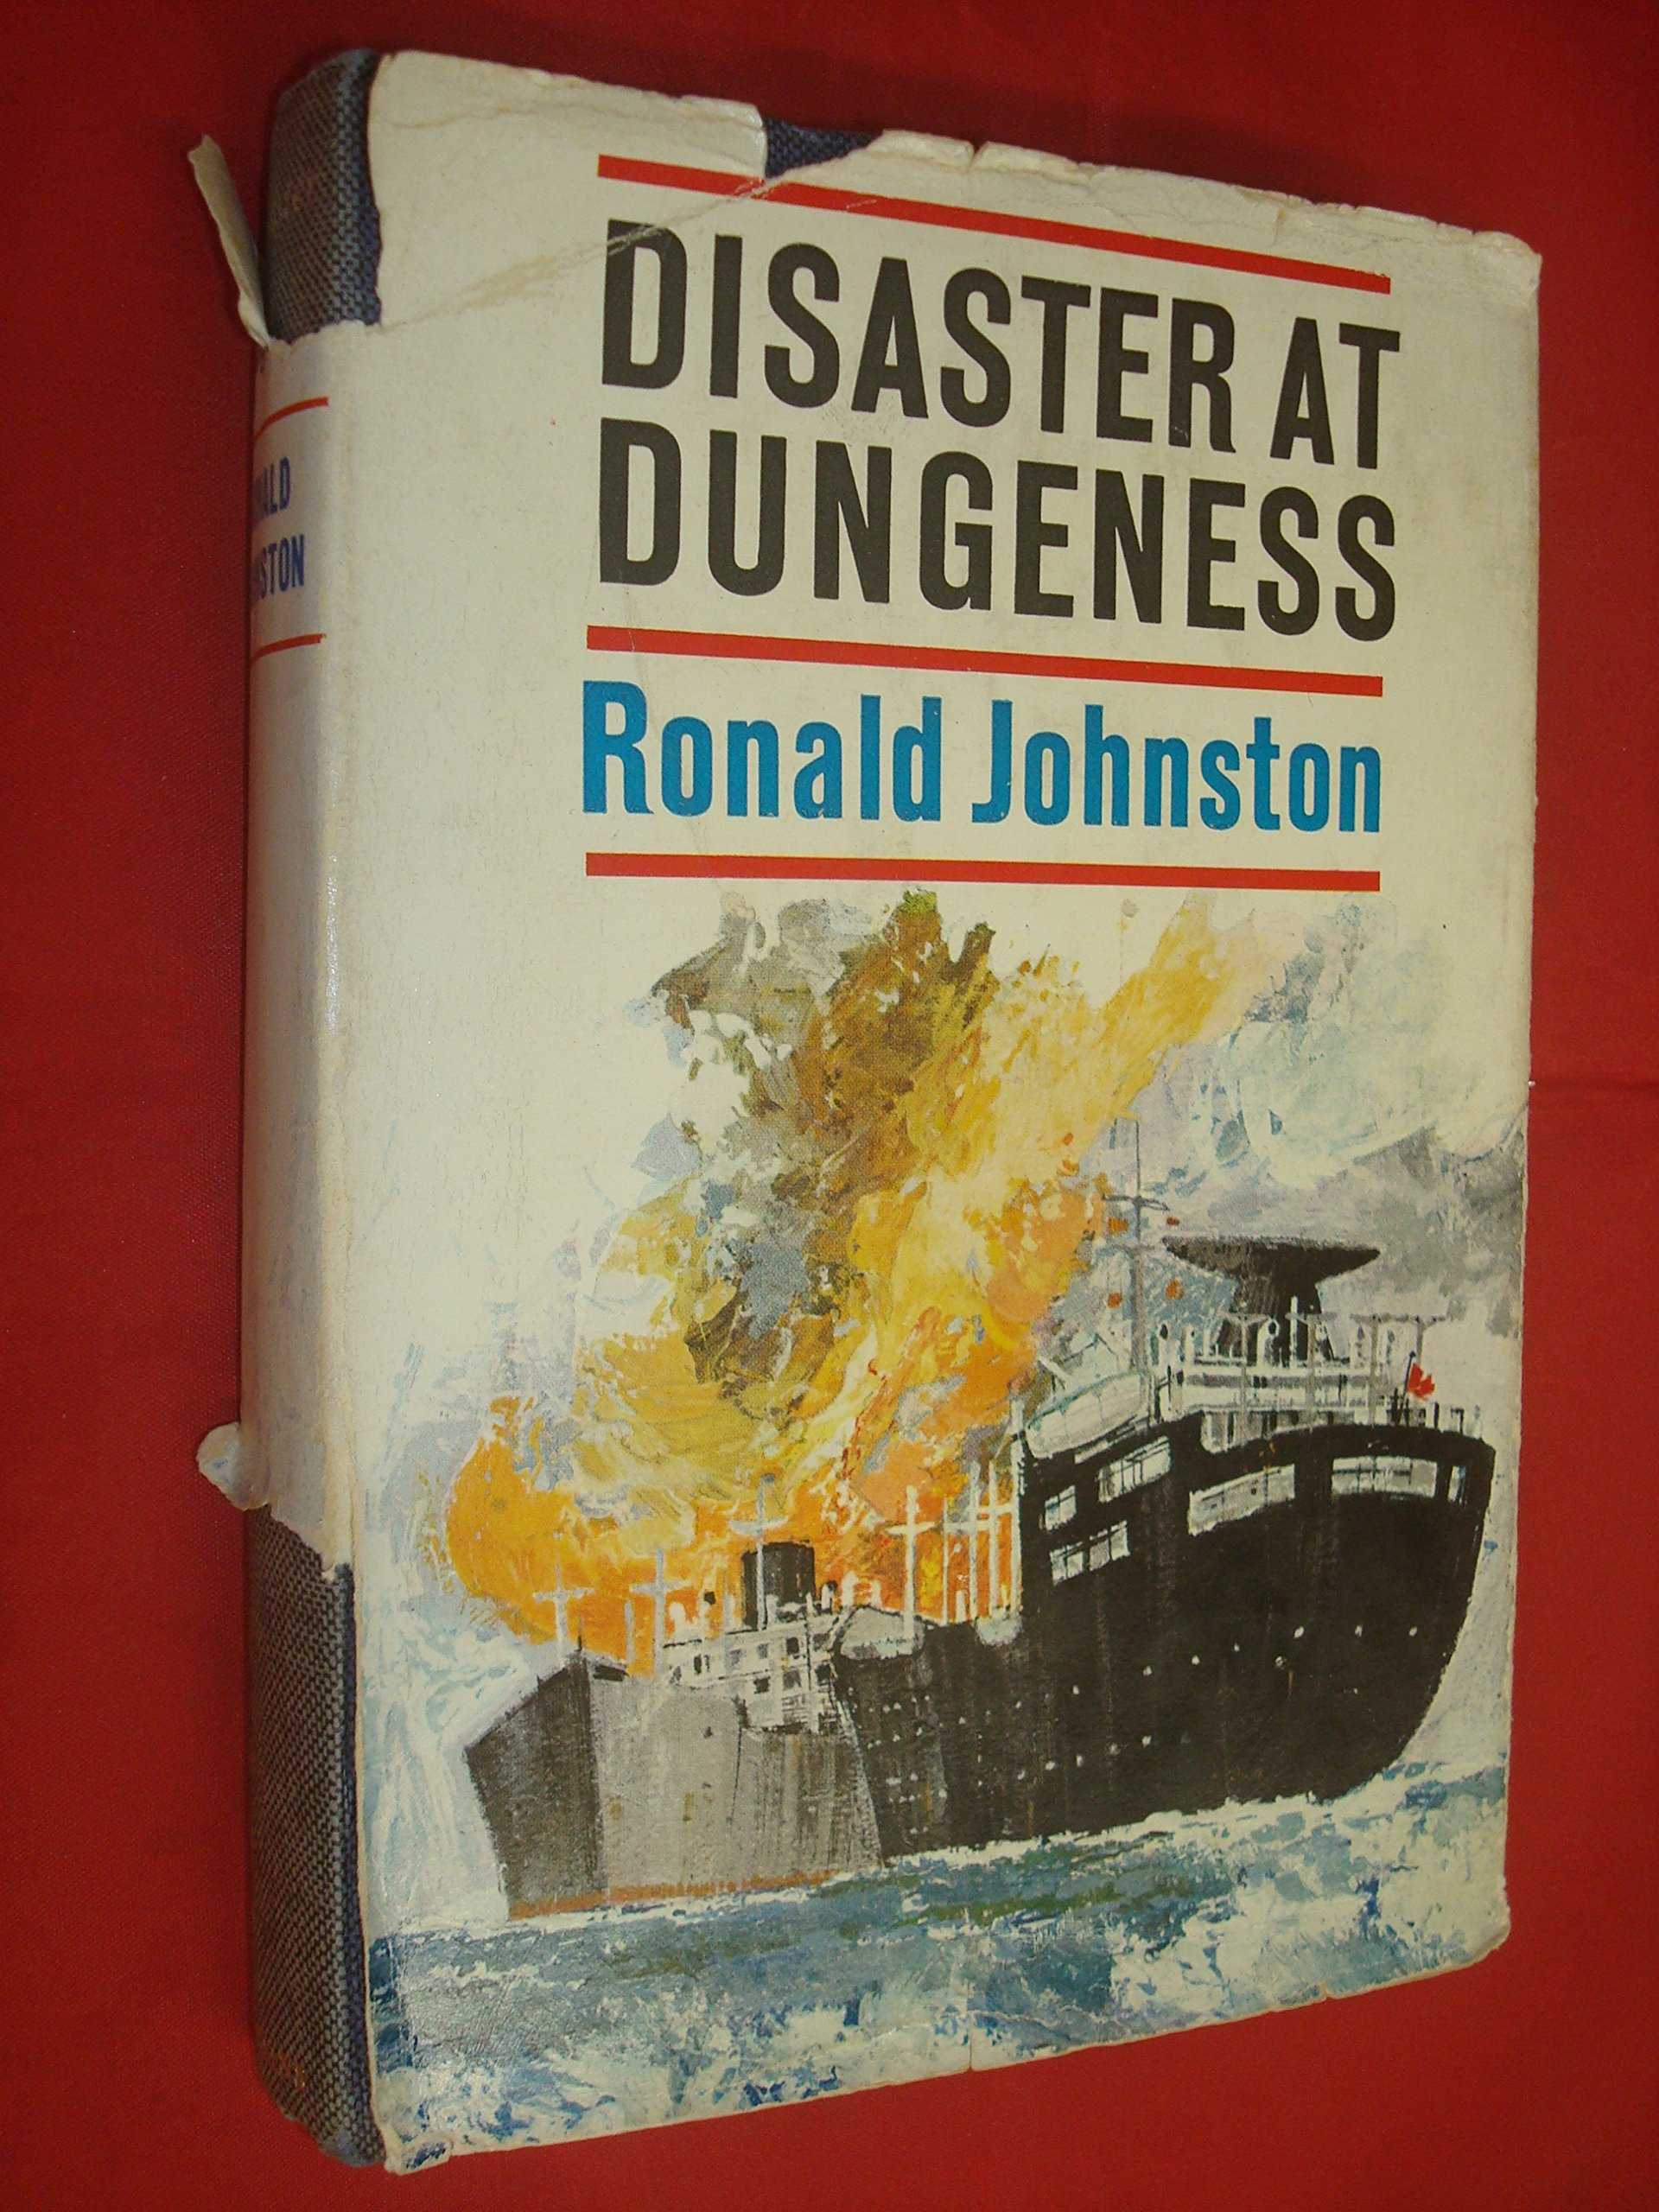 DISASTER AT DUNGENESS